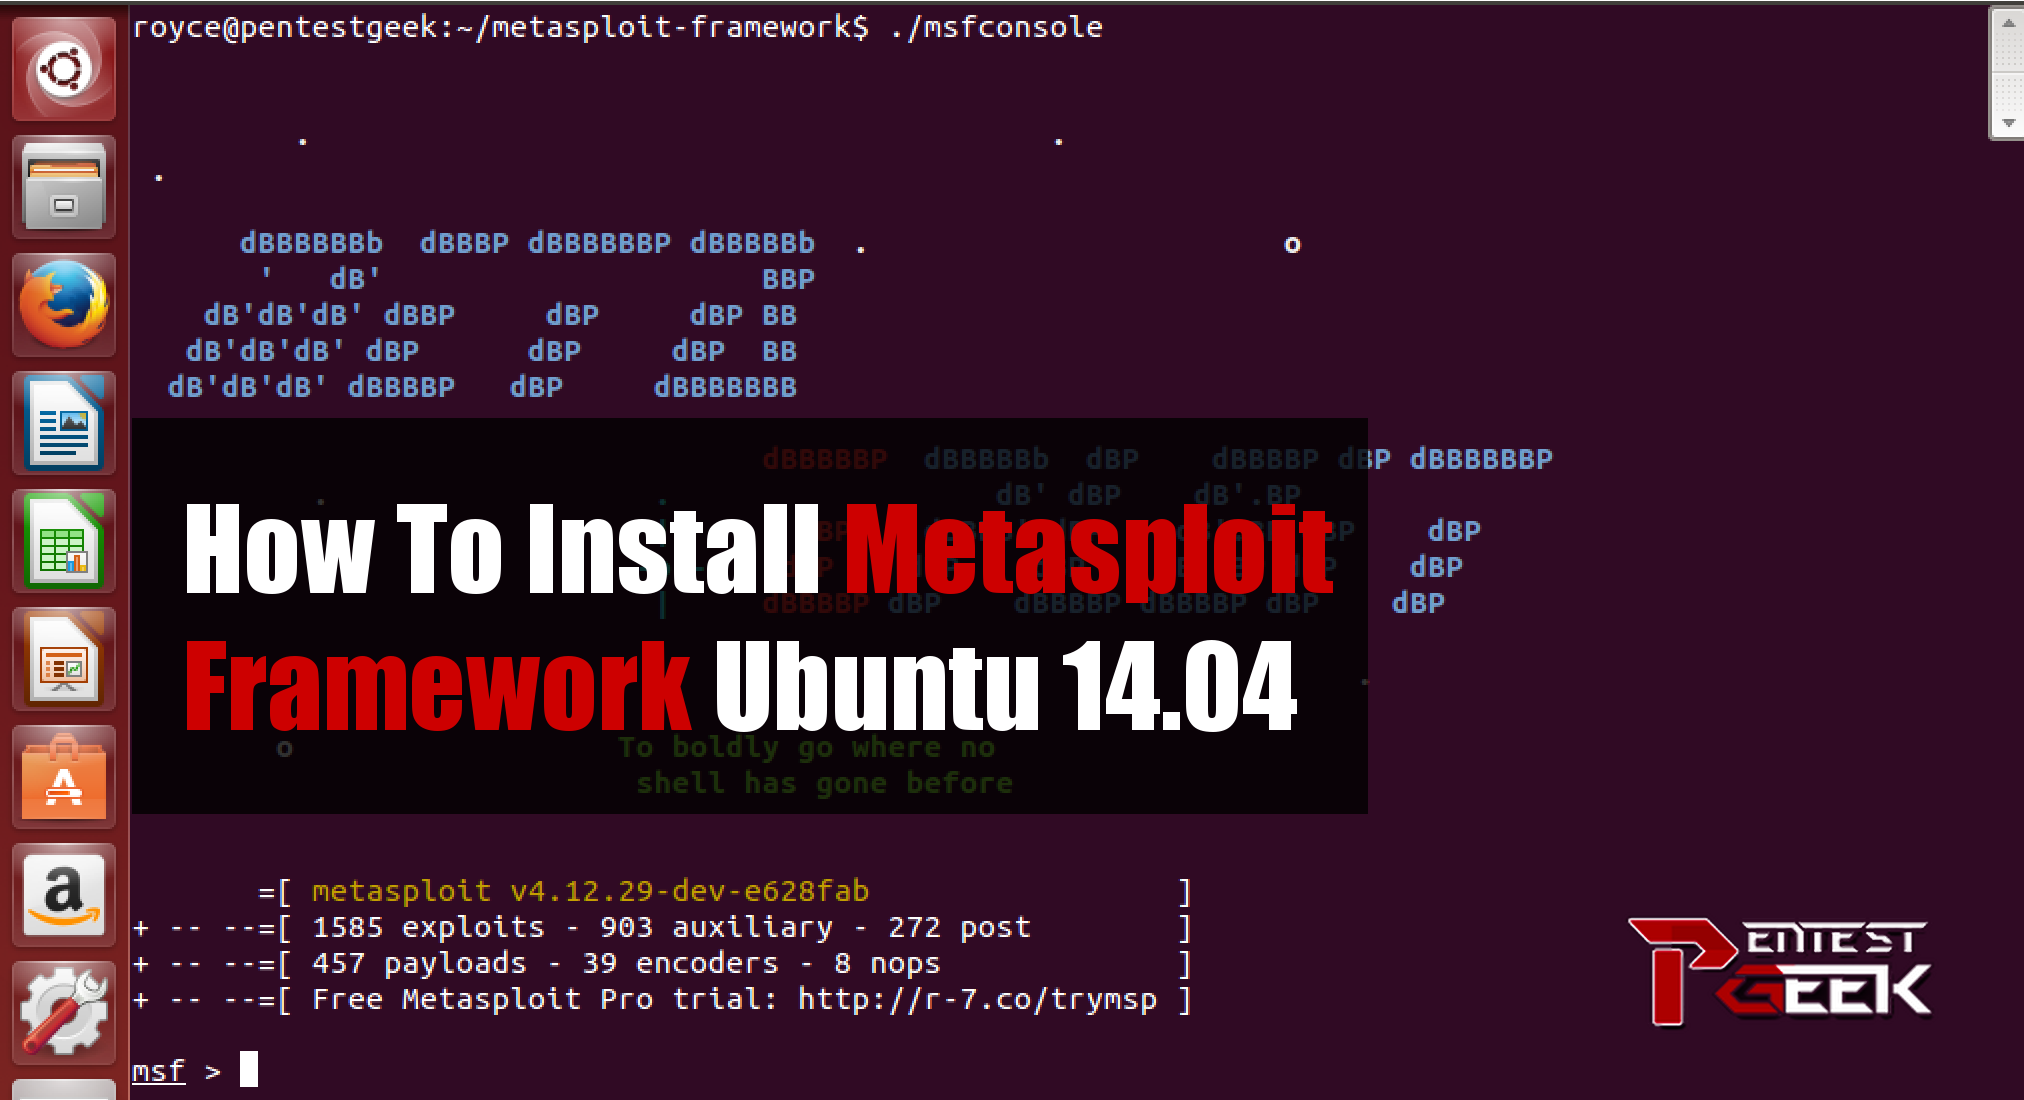 how to download ubuntu 14.04